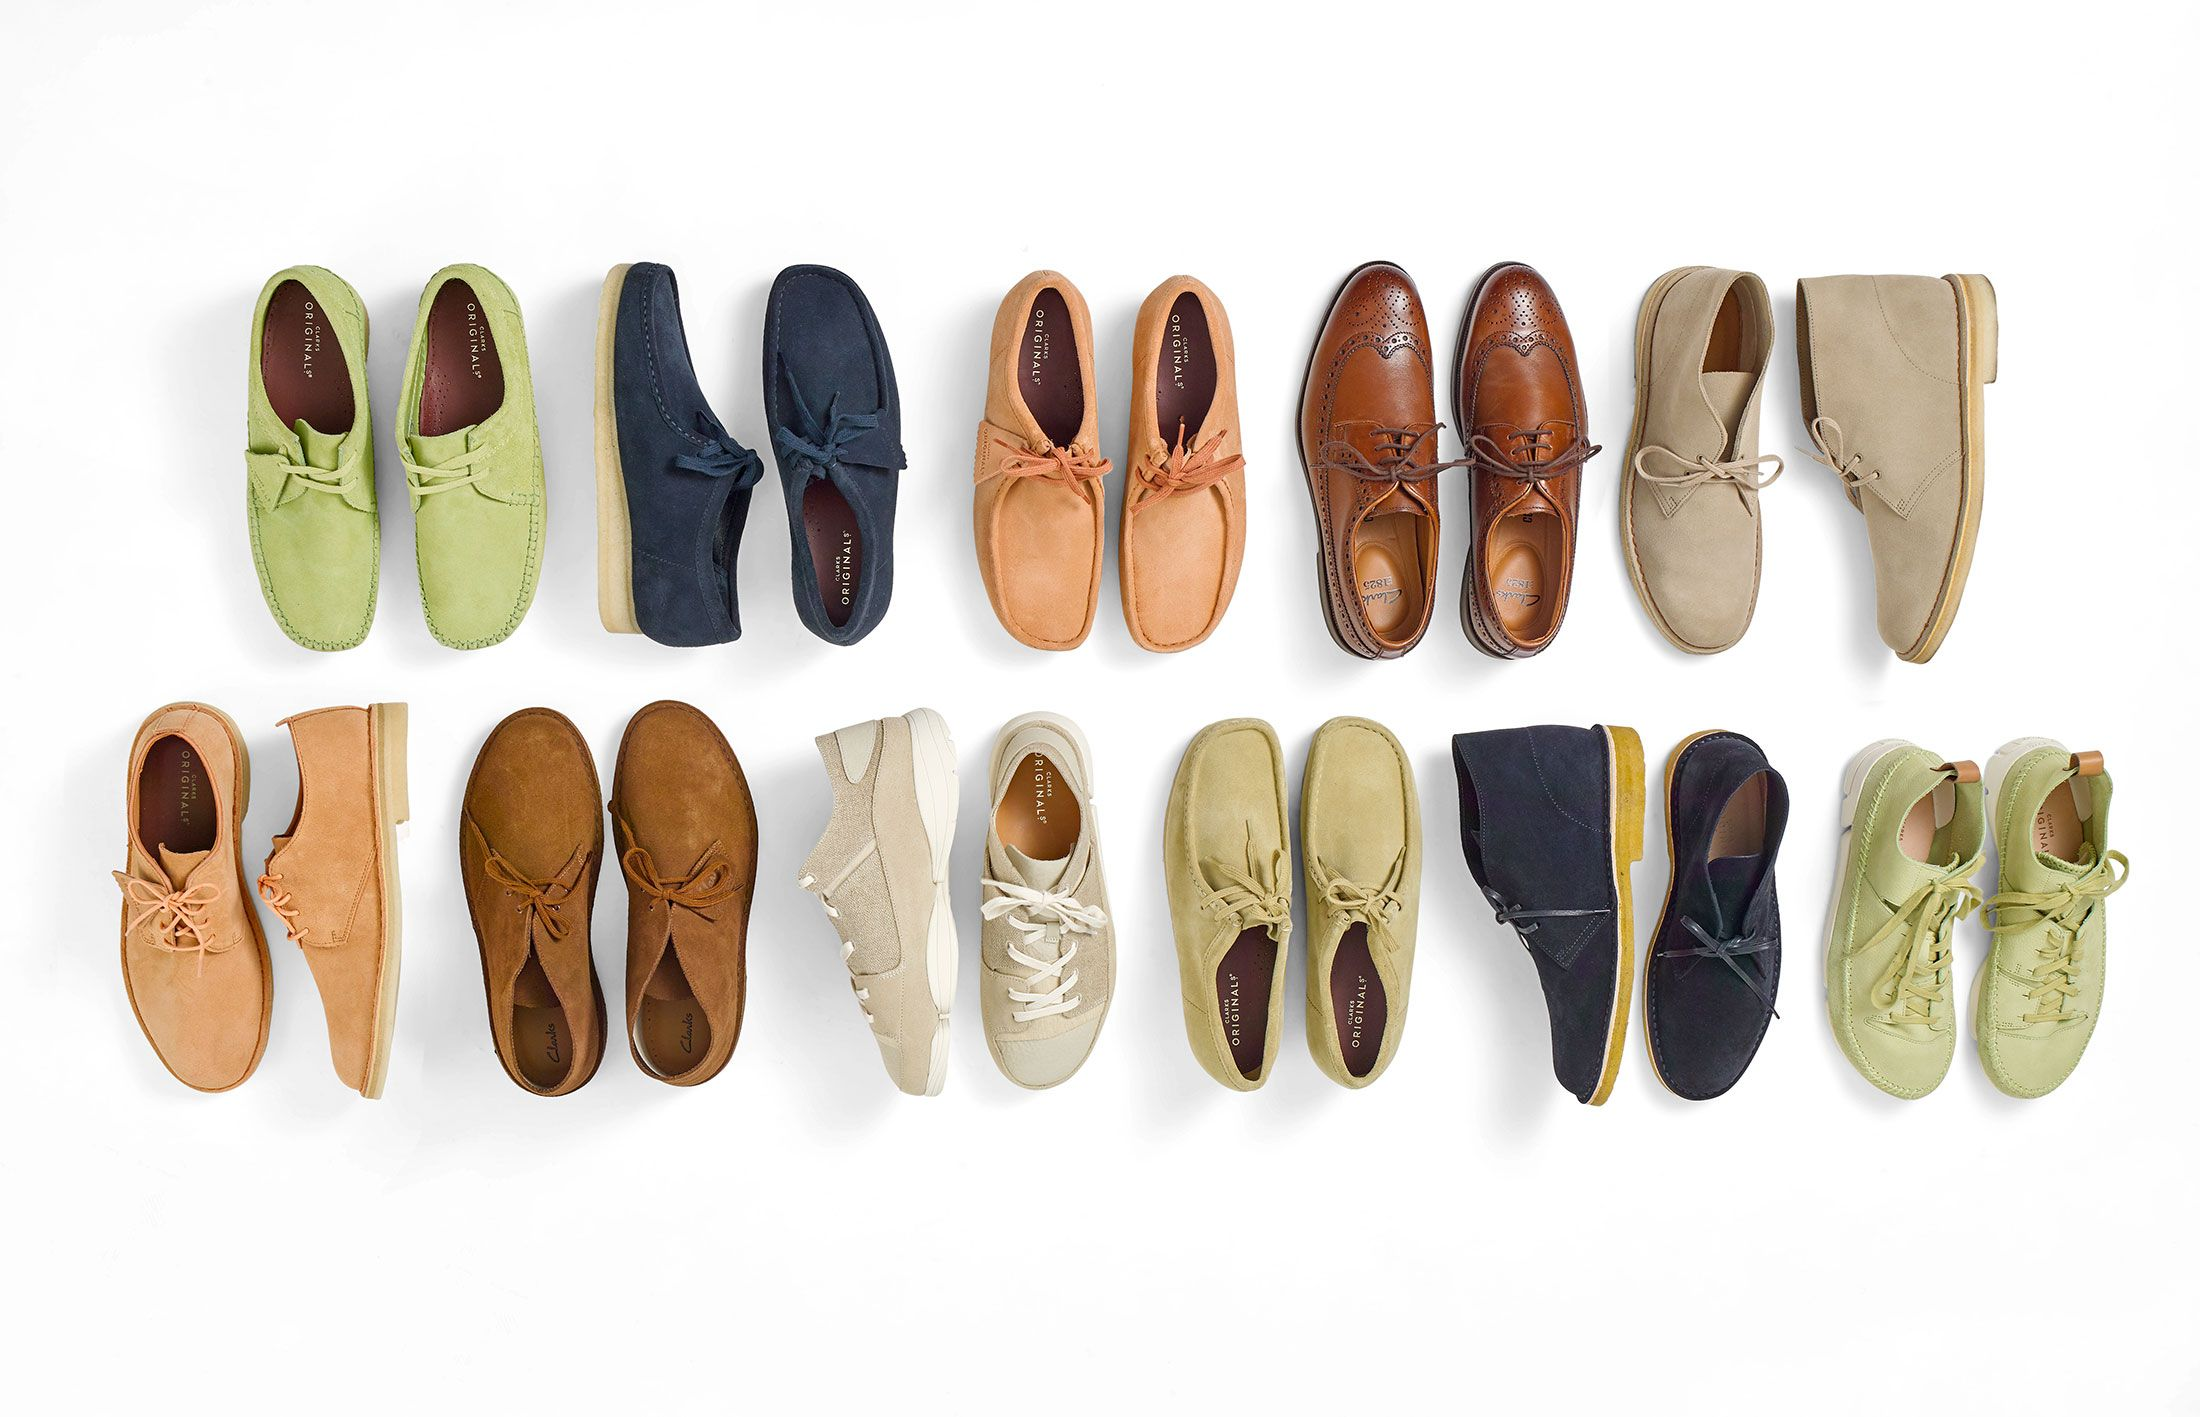 Why we love Clarks